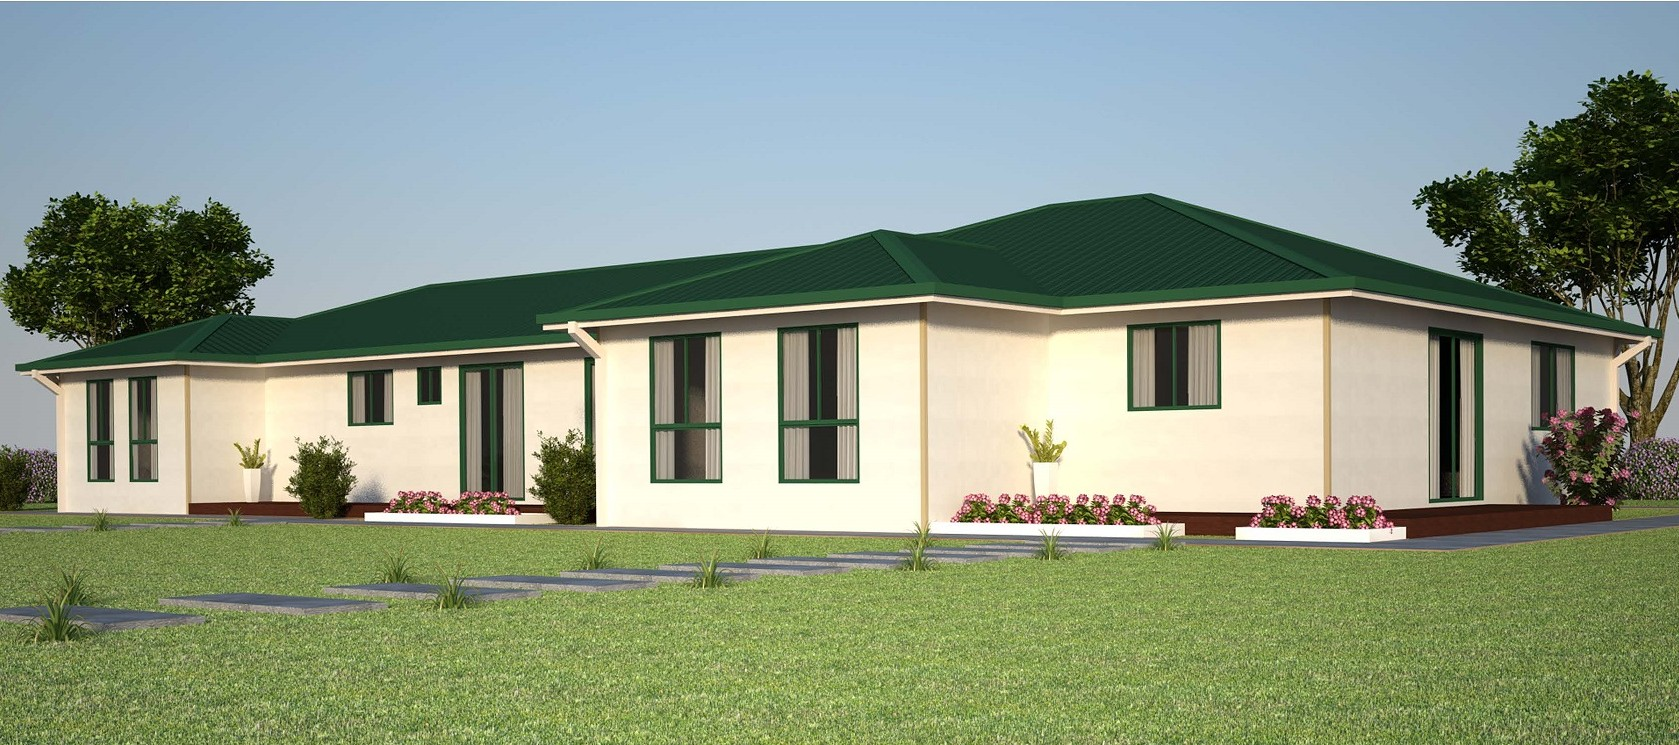 4 Bedroom Kit Home lining components